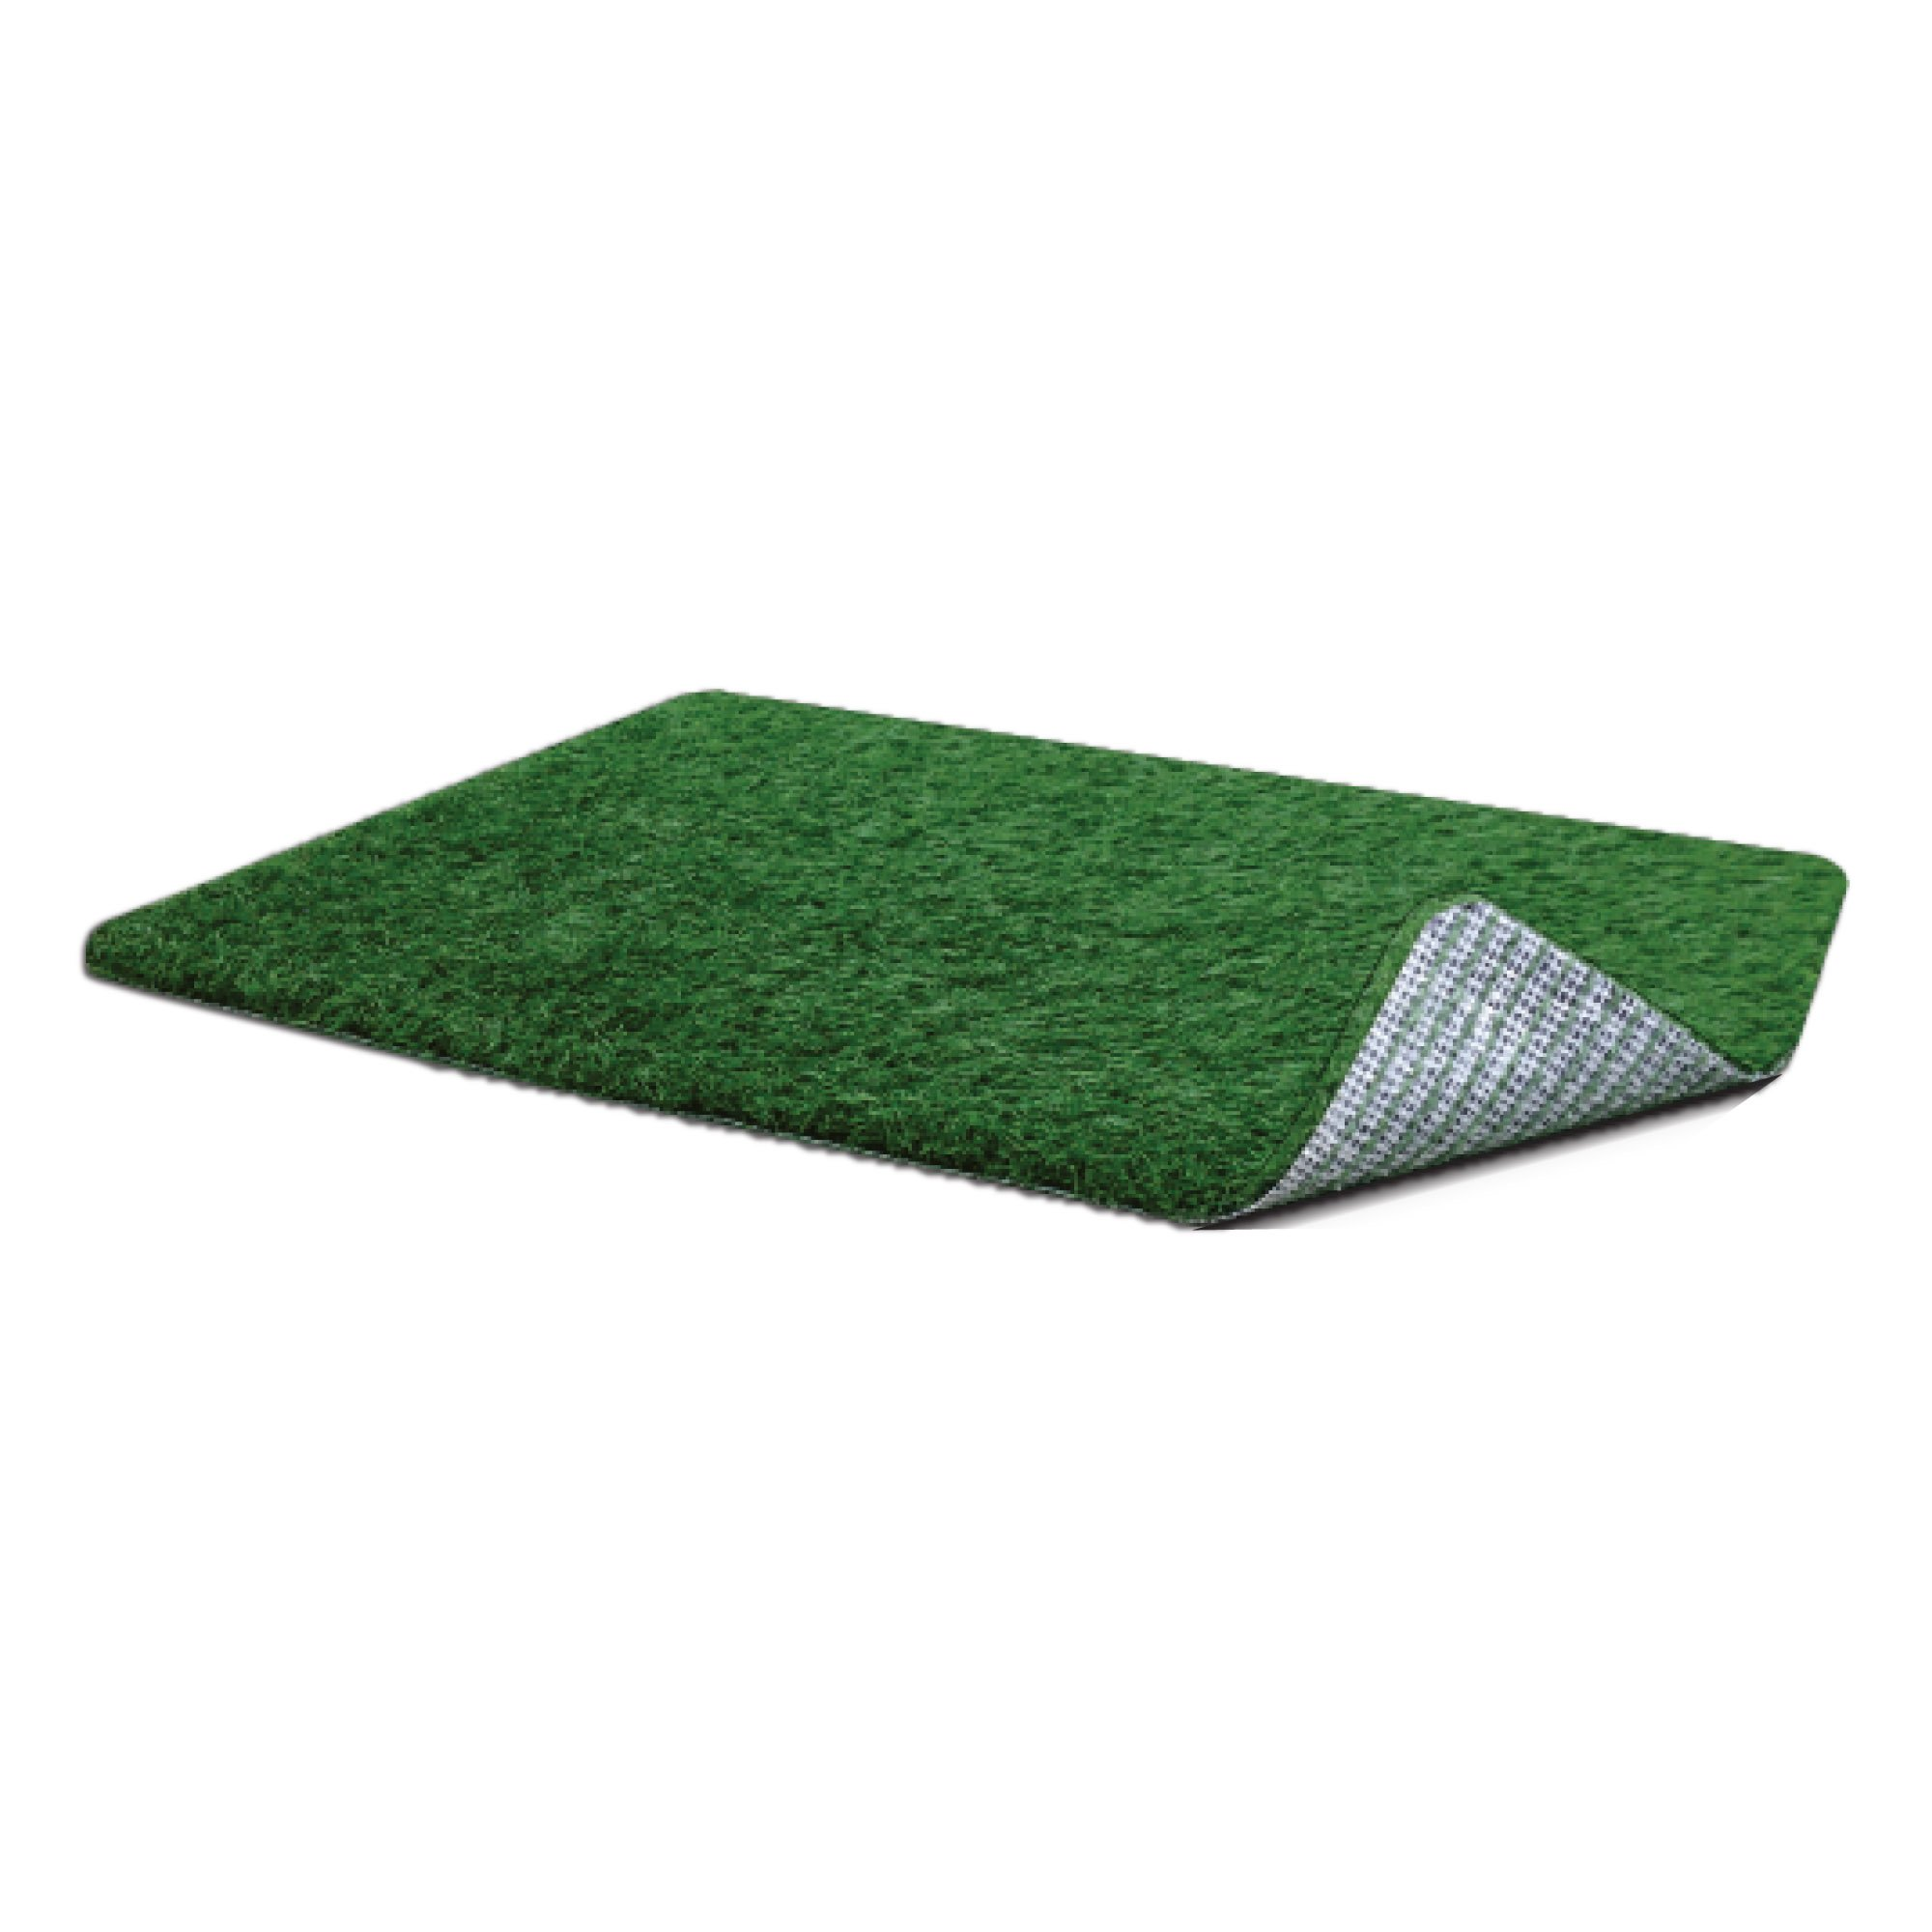 PoochPads Indoor Turf Replacement Grass Dog Potty, Large/28'' x 36''